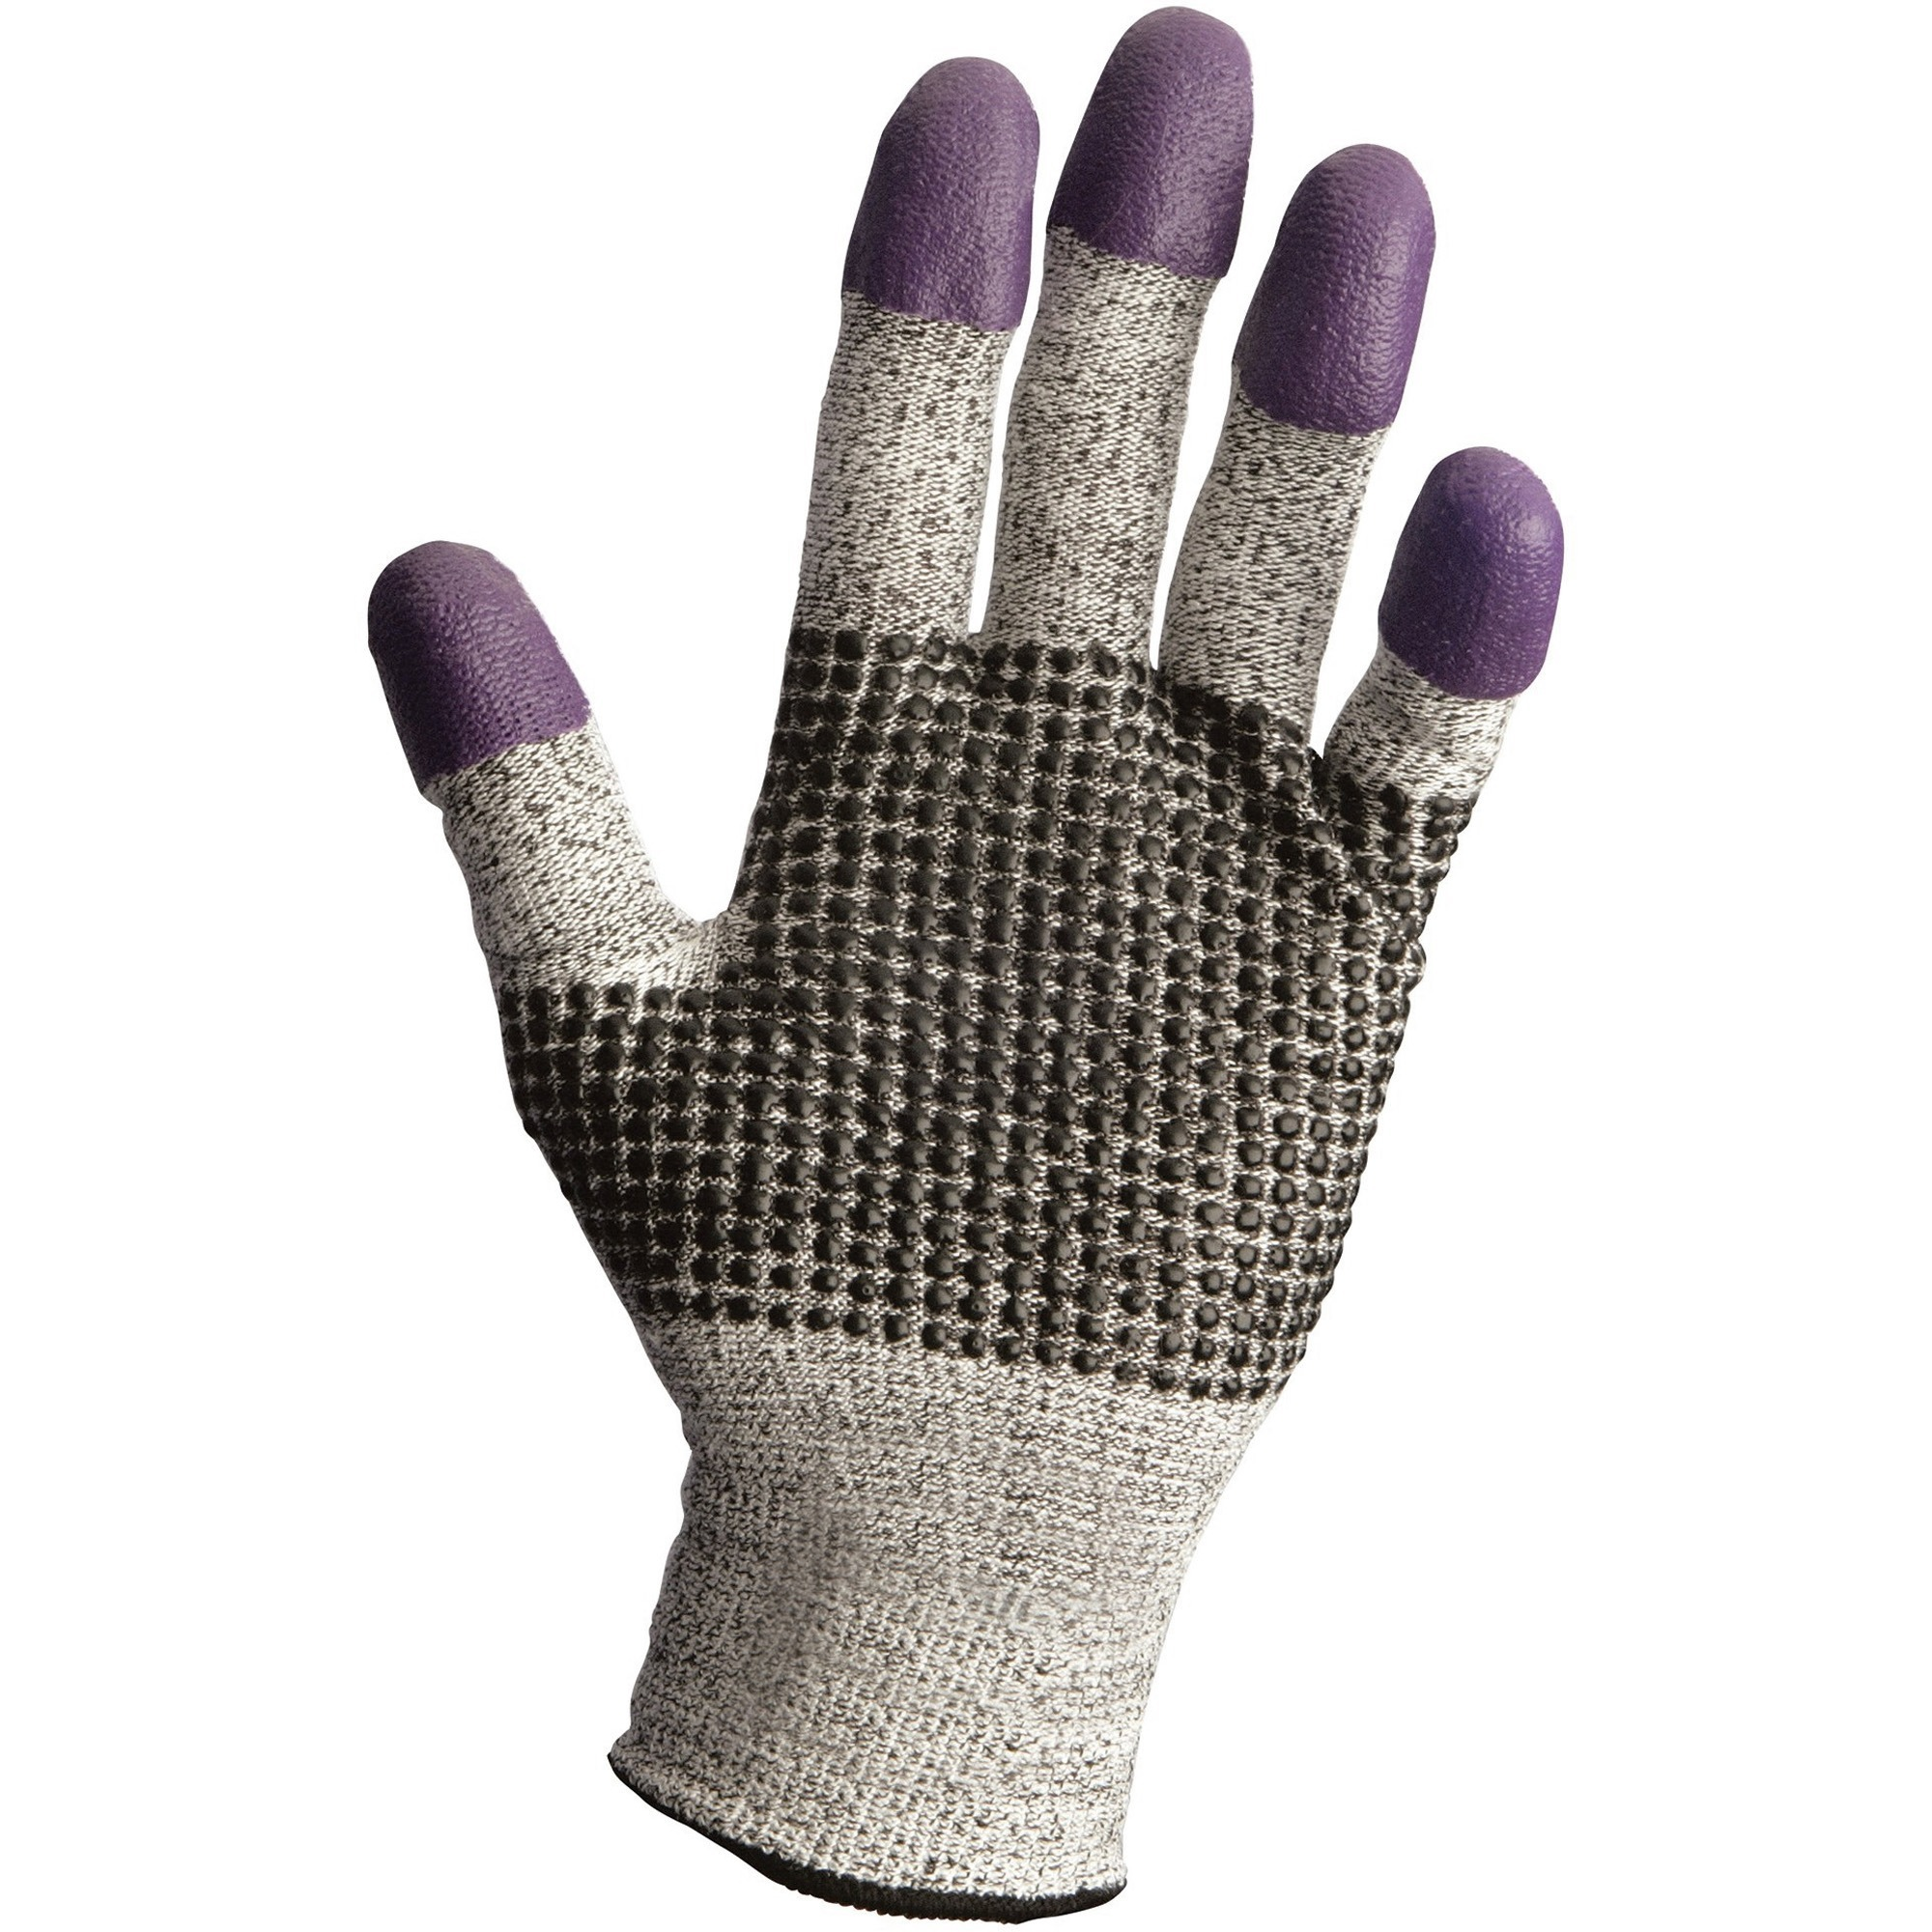 KleenGuard G60 Level 3 Purple Nitrile Cut-Resistant Gloves - 8 Size Number - Medium Size - Nitrile - Purple - Ambidextrous, Cut Resistant - 2 / Pair